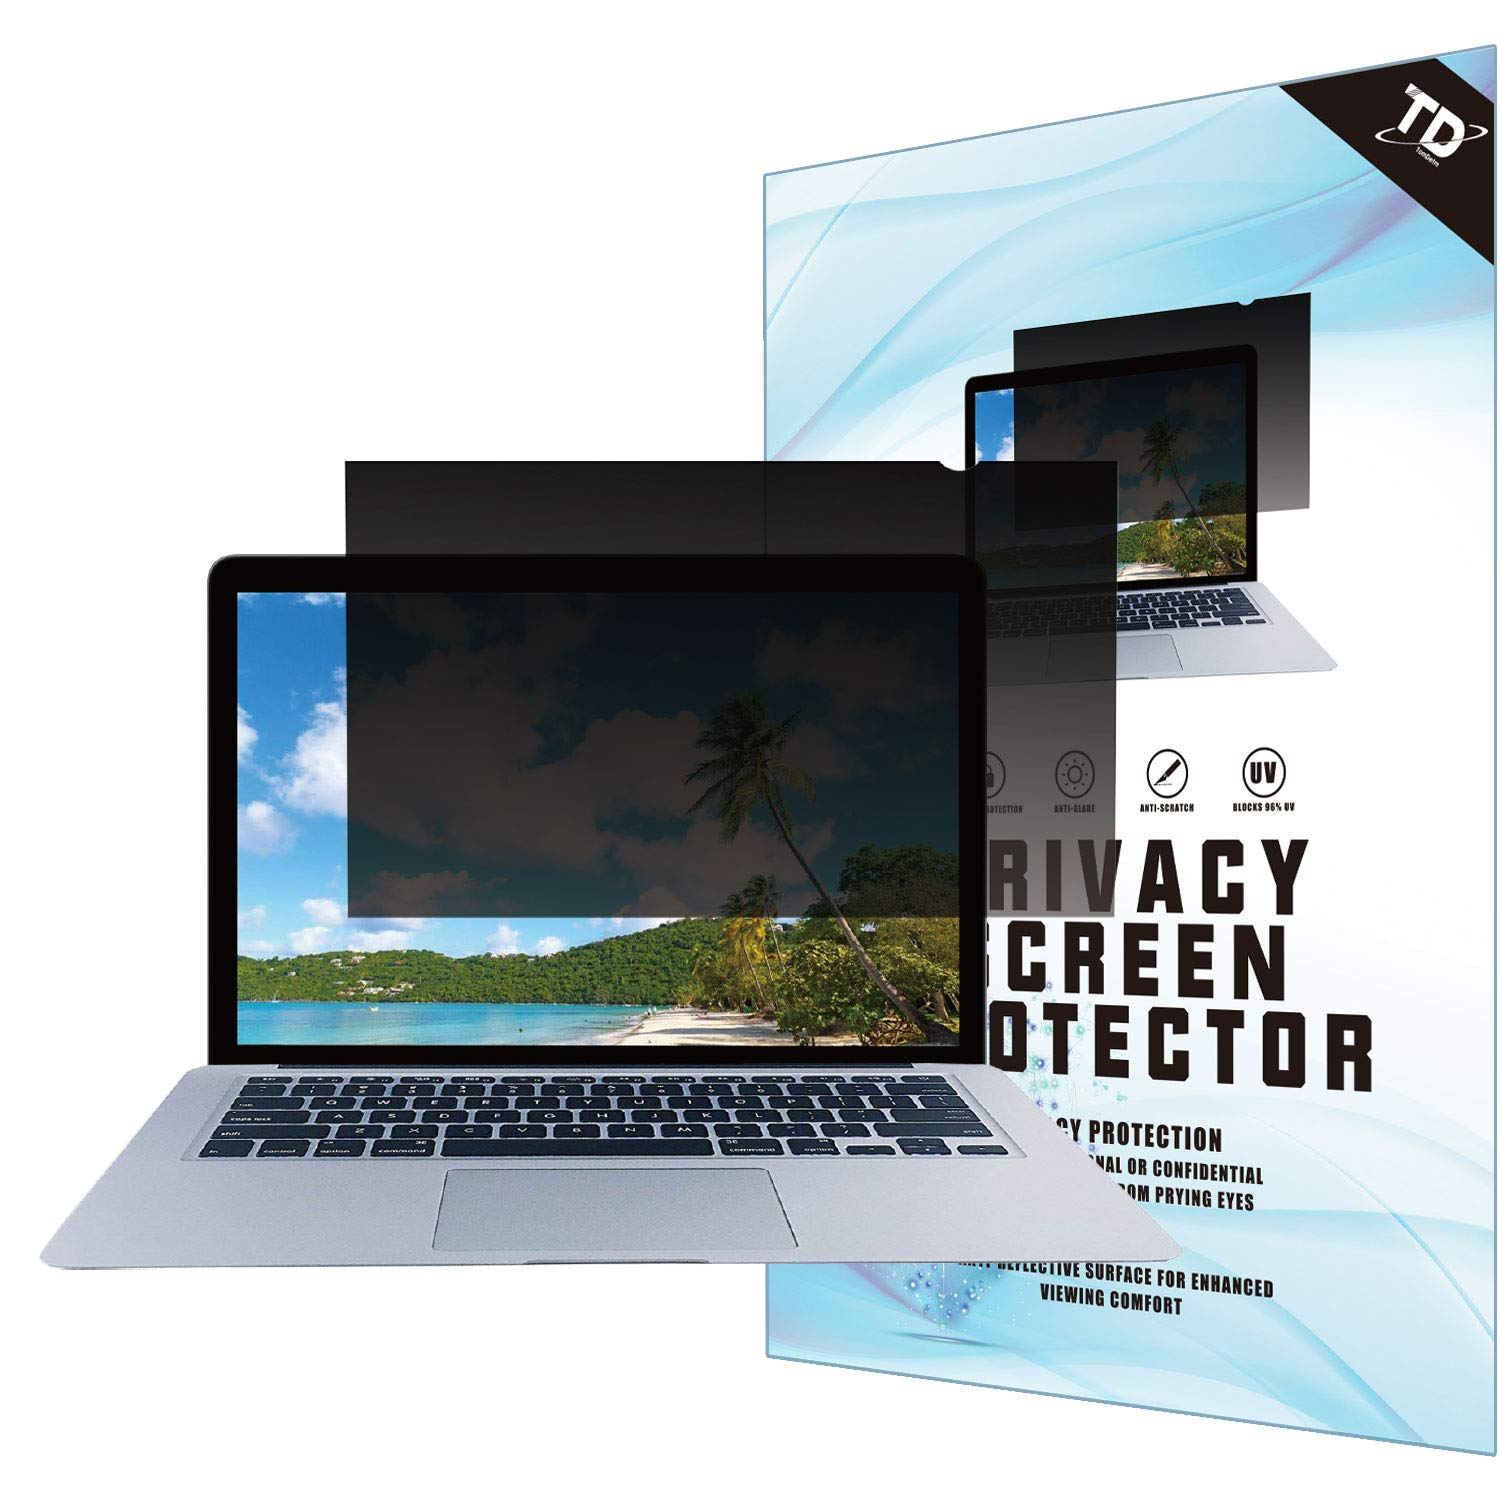 13.3''W Inch Privacy Screen Filter for Widescreen Laptop - Anti-Glare, Blocks 96% UV,Anti-Scratch with 16:9 Aspect Ratio